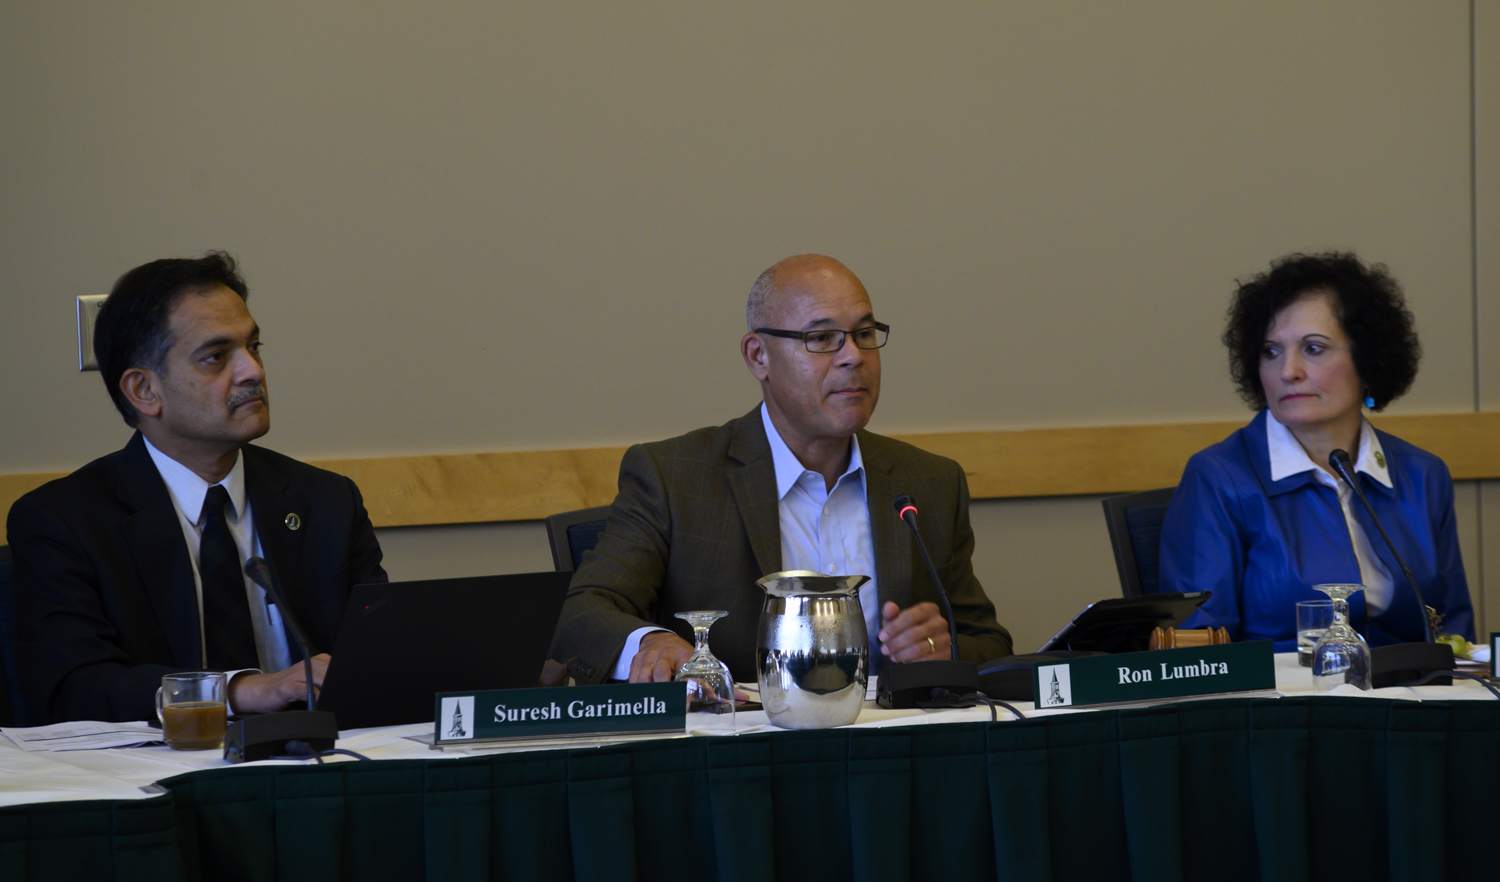 (Left to Right) President Suresh Garimella, Vice Chair Ron Lumbra and now Provost Patricia Prelock sit at a board of trustees meeting, Oct. 26. Prelock was appointed Provost this afternoon by President Garimella.